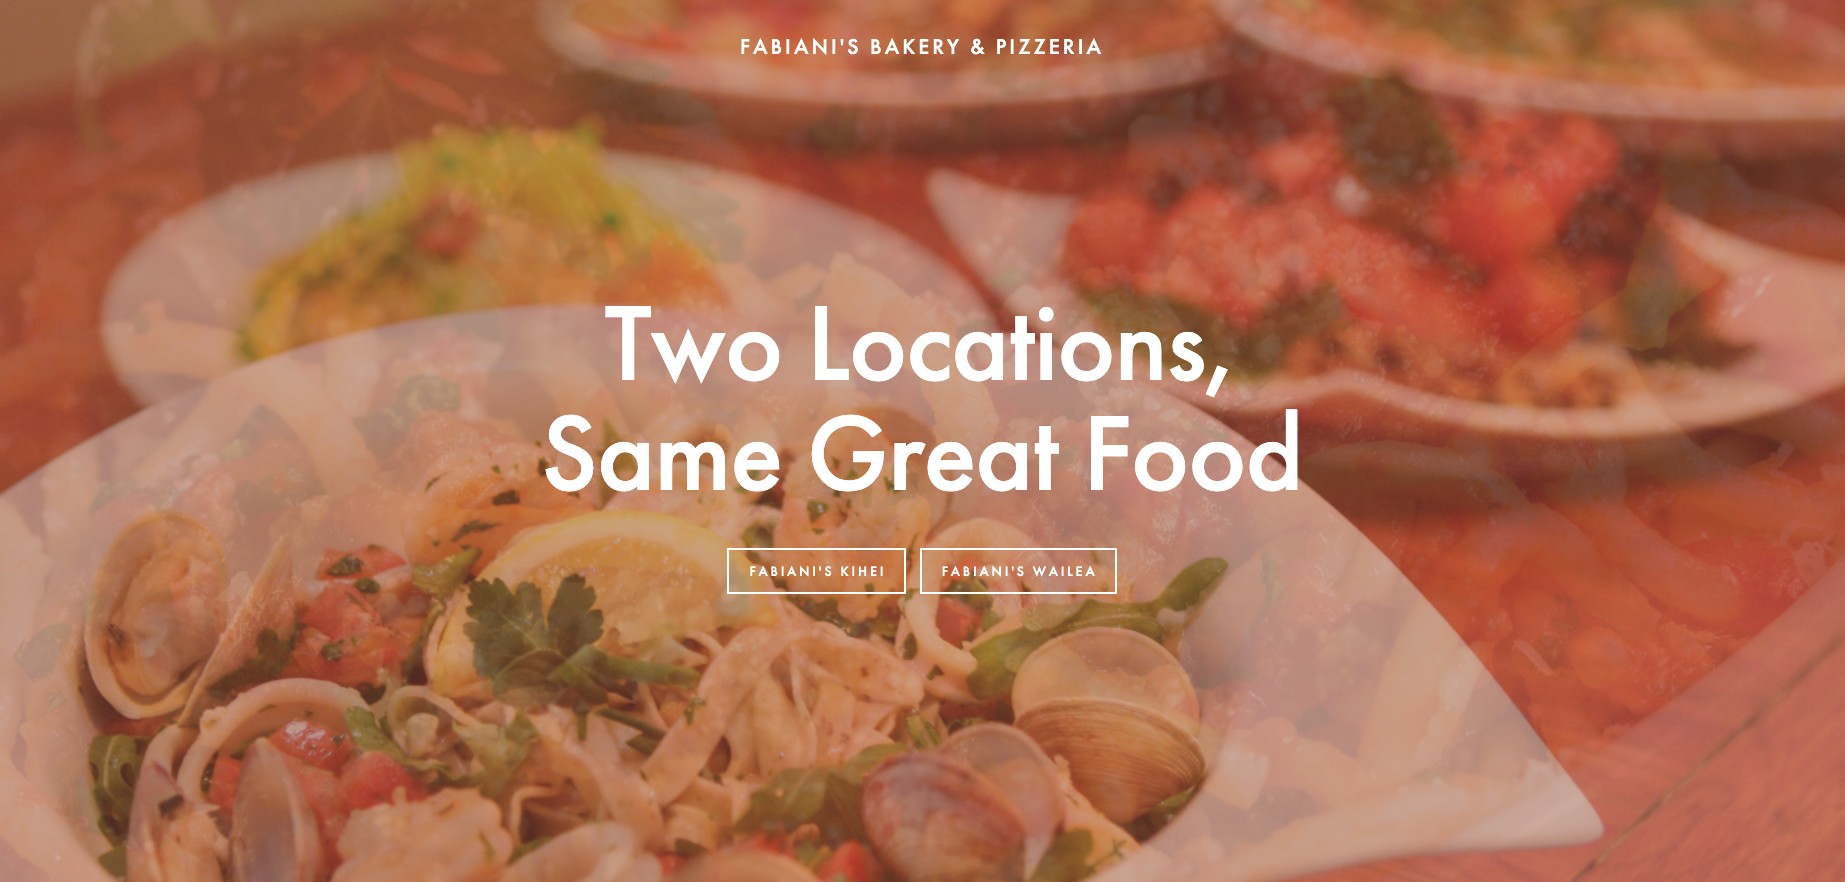 Fabiani's Bakery and Pizzeria